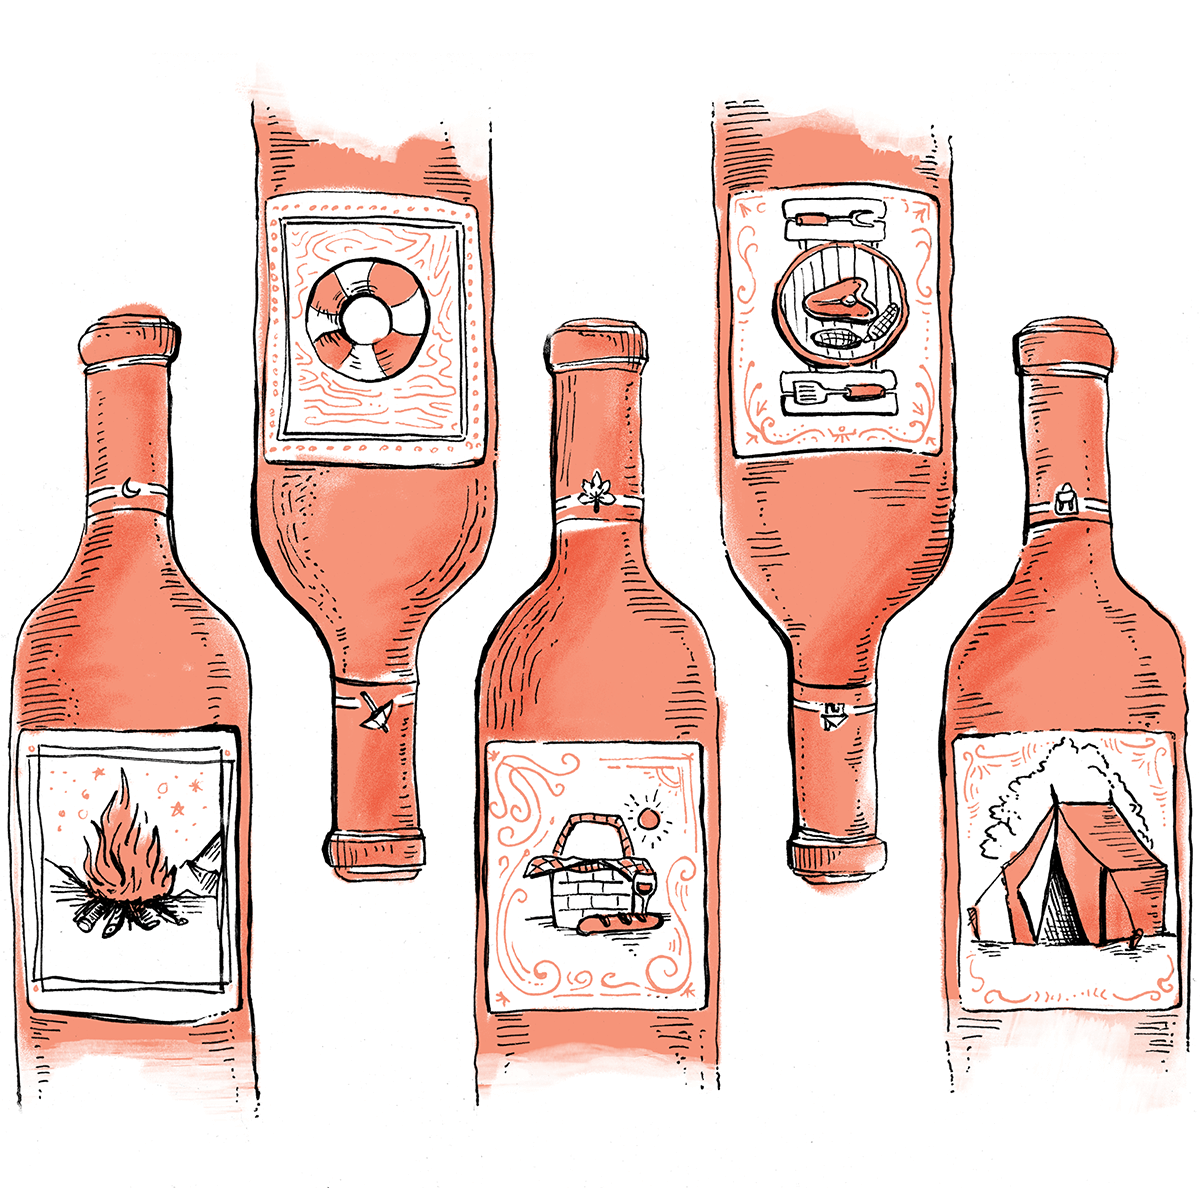 New York Magazine, Summer Wine Pairings - Illustrations for New York Magazine's article with Sweetbitter's Stephanie Danler on five wines that pair well with your favorite summer activities.IllustrationView Project →